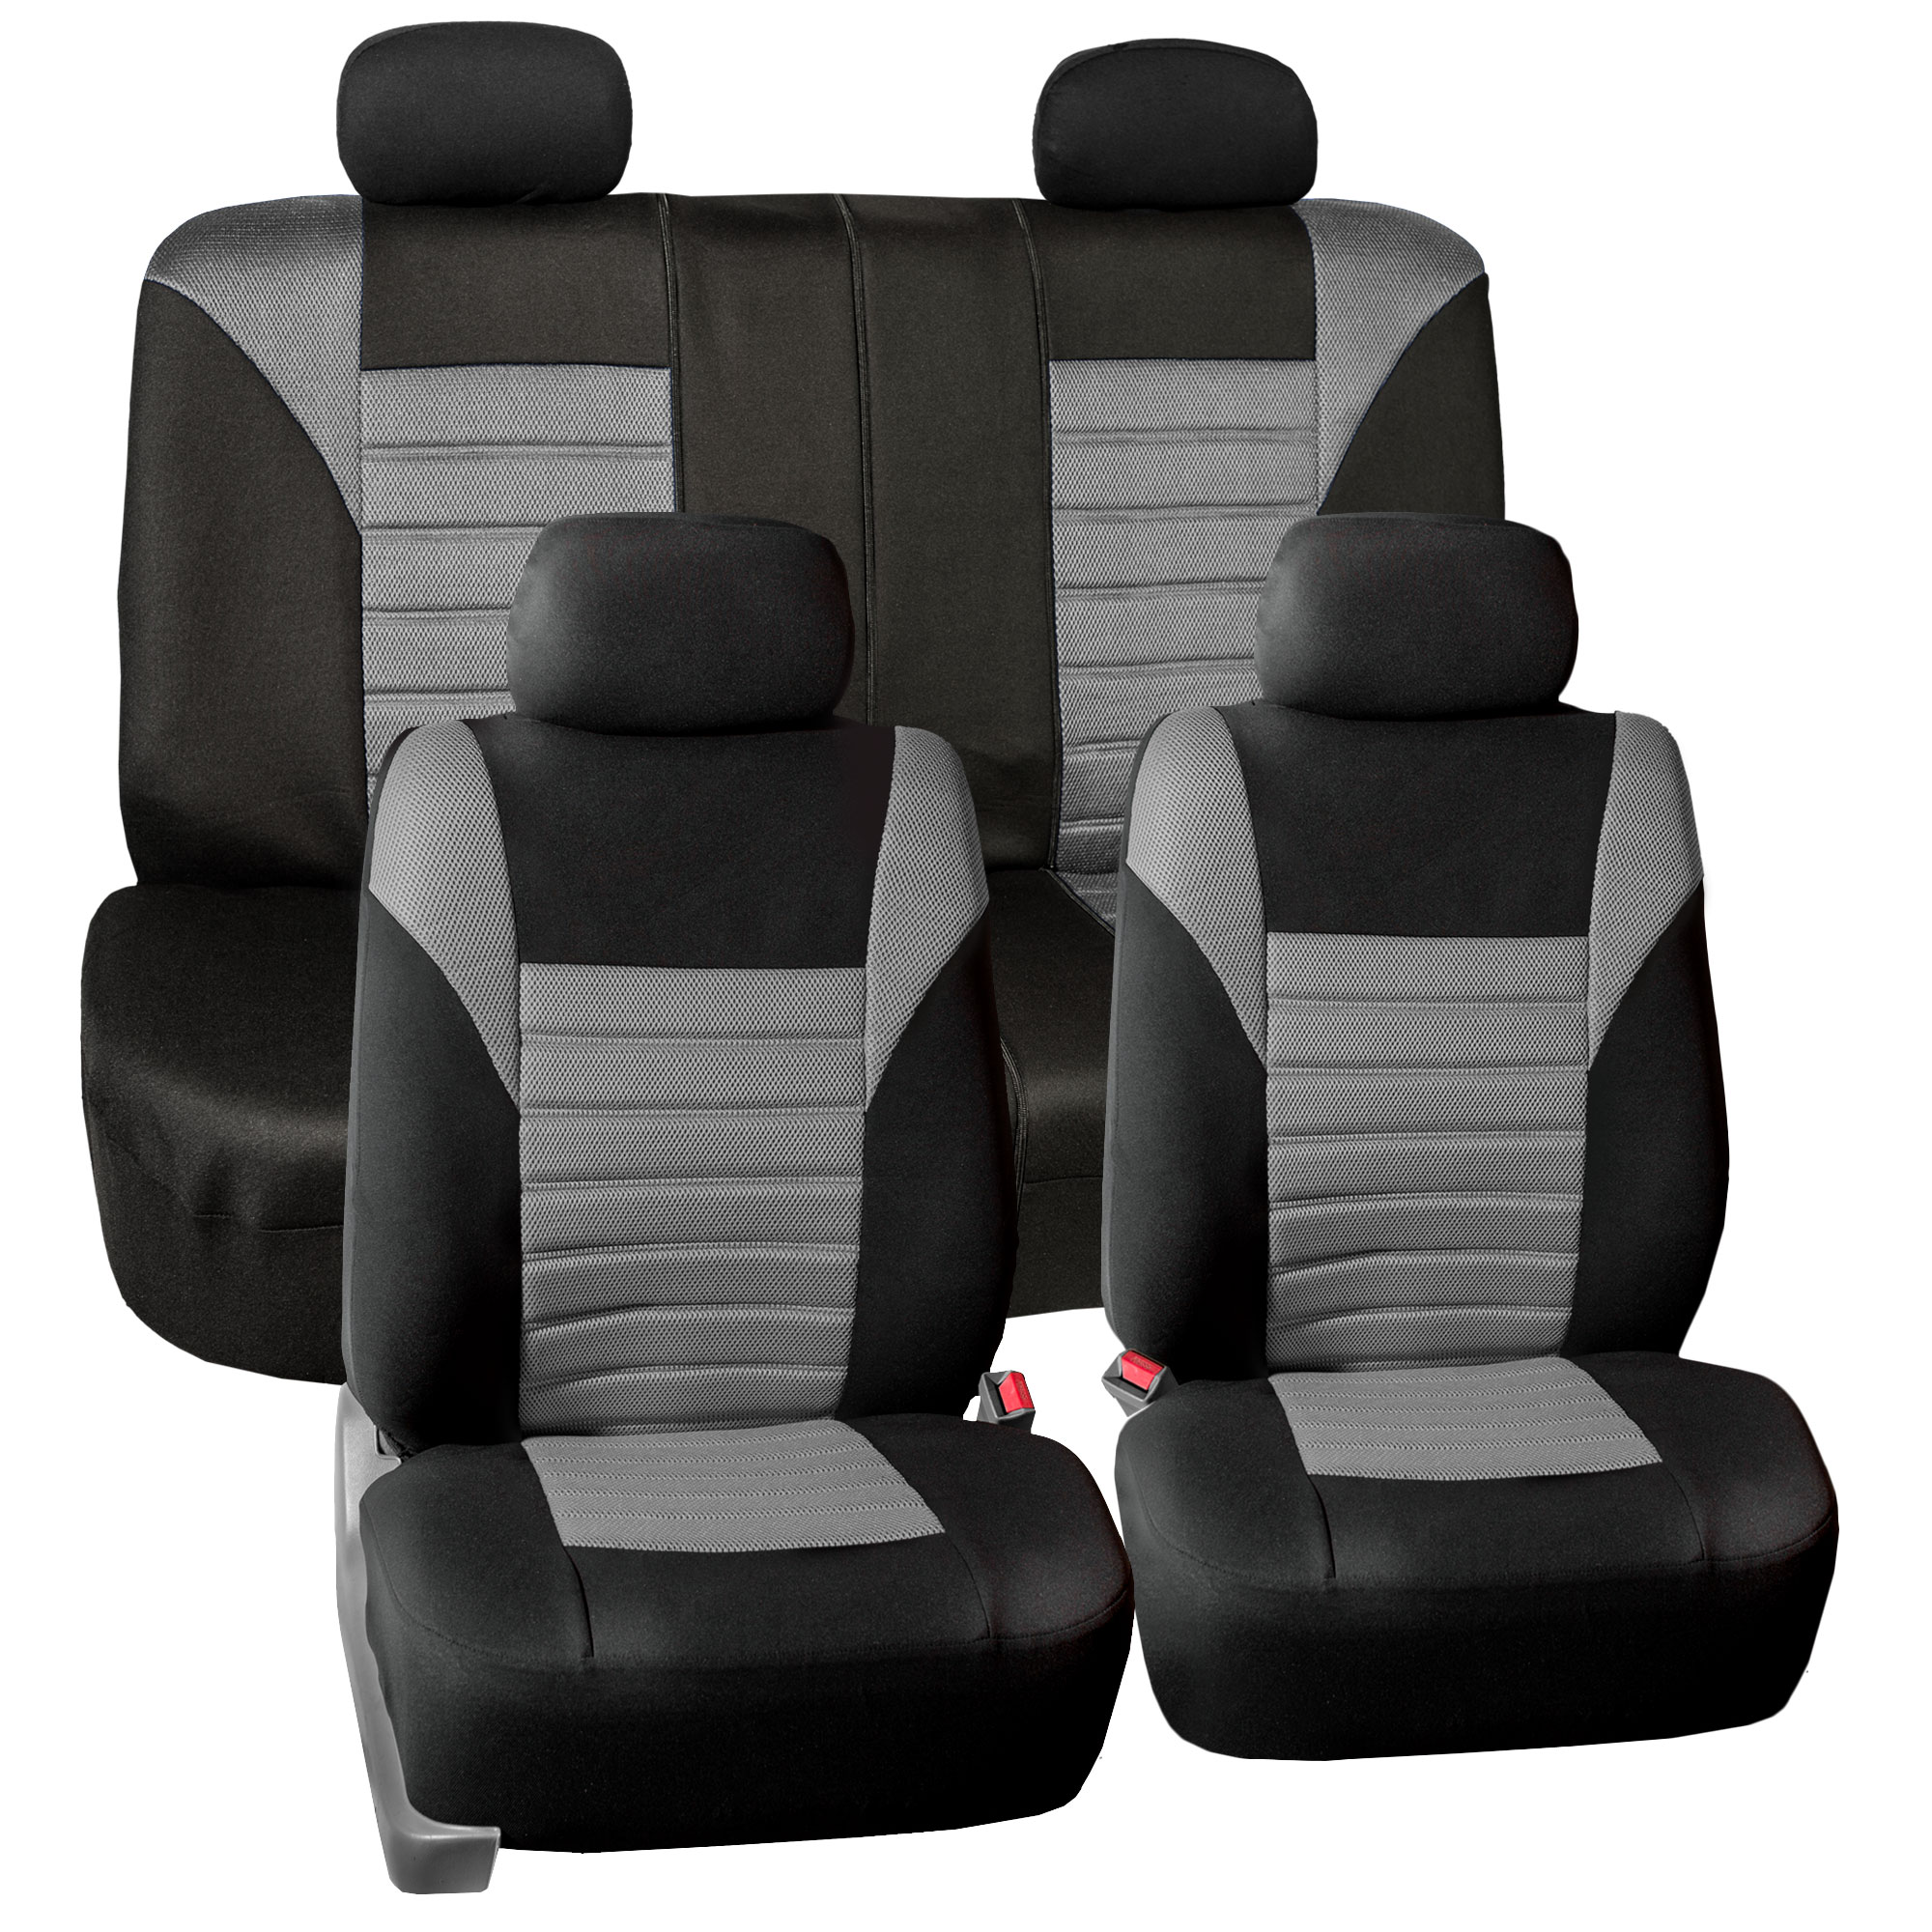 Air Mesh Car Seat Covers For Auto Car SUV Van With 4